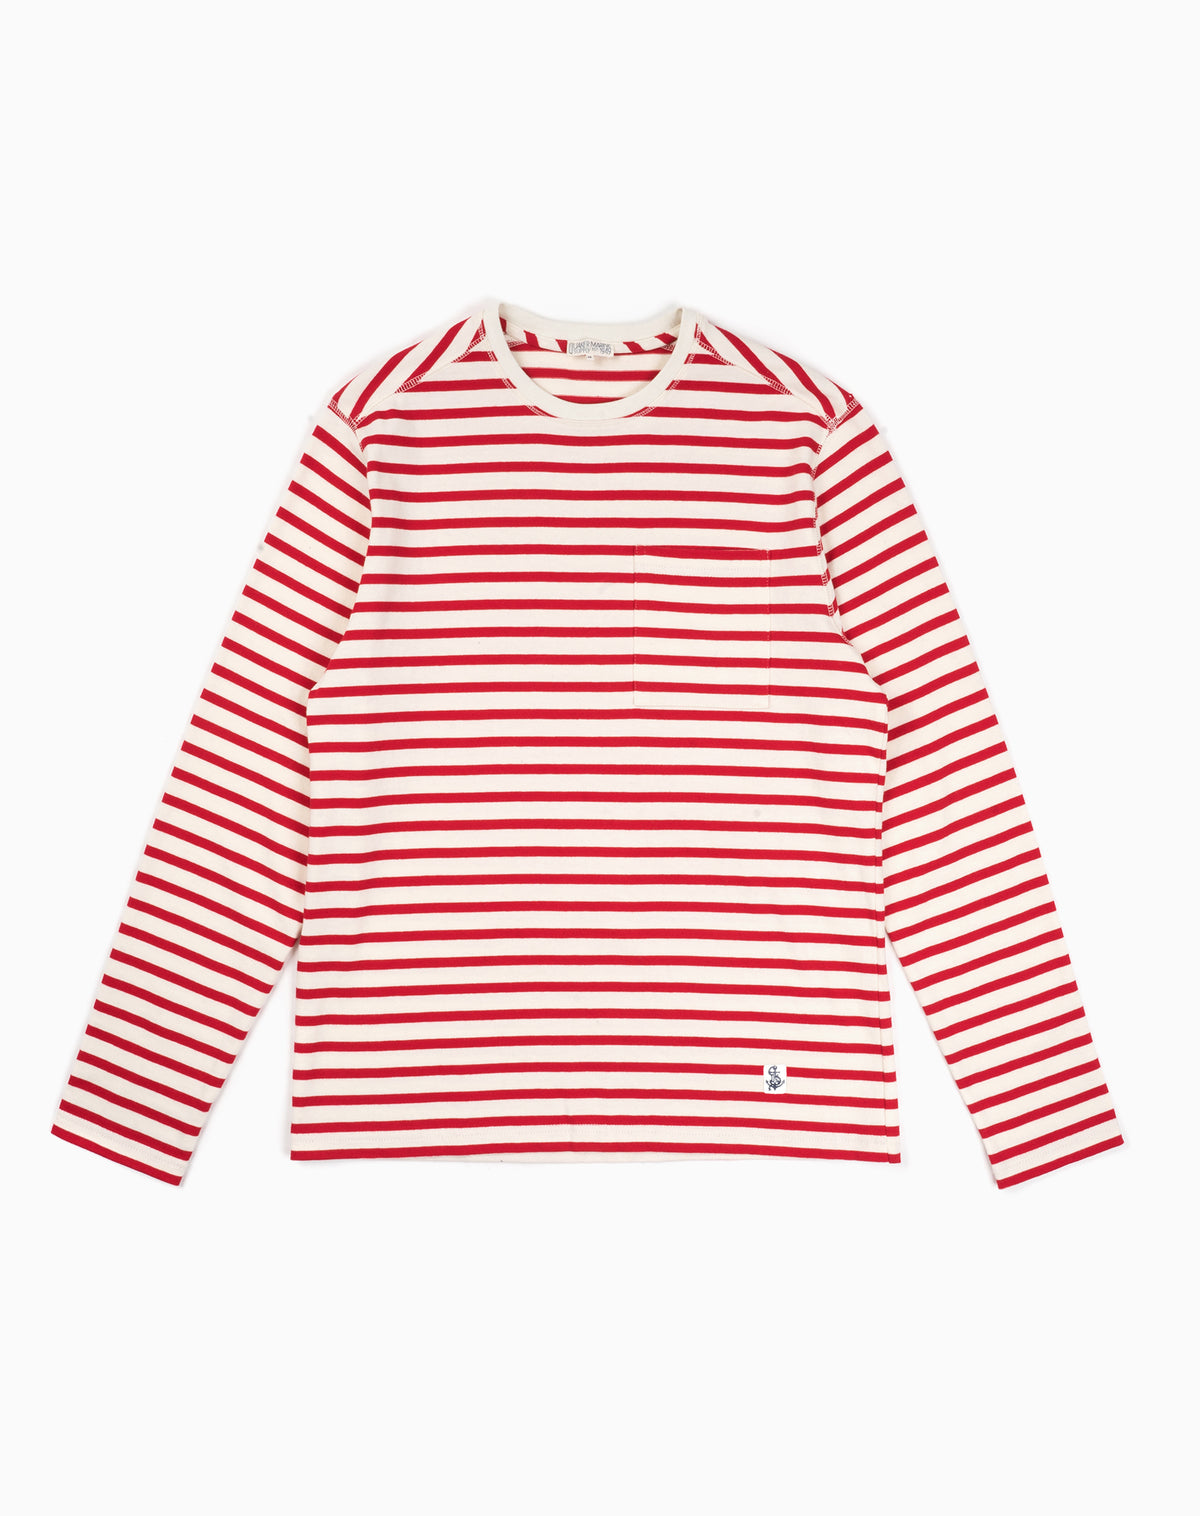 Mariner Knit Shirt in Red/Cream